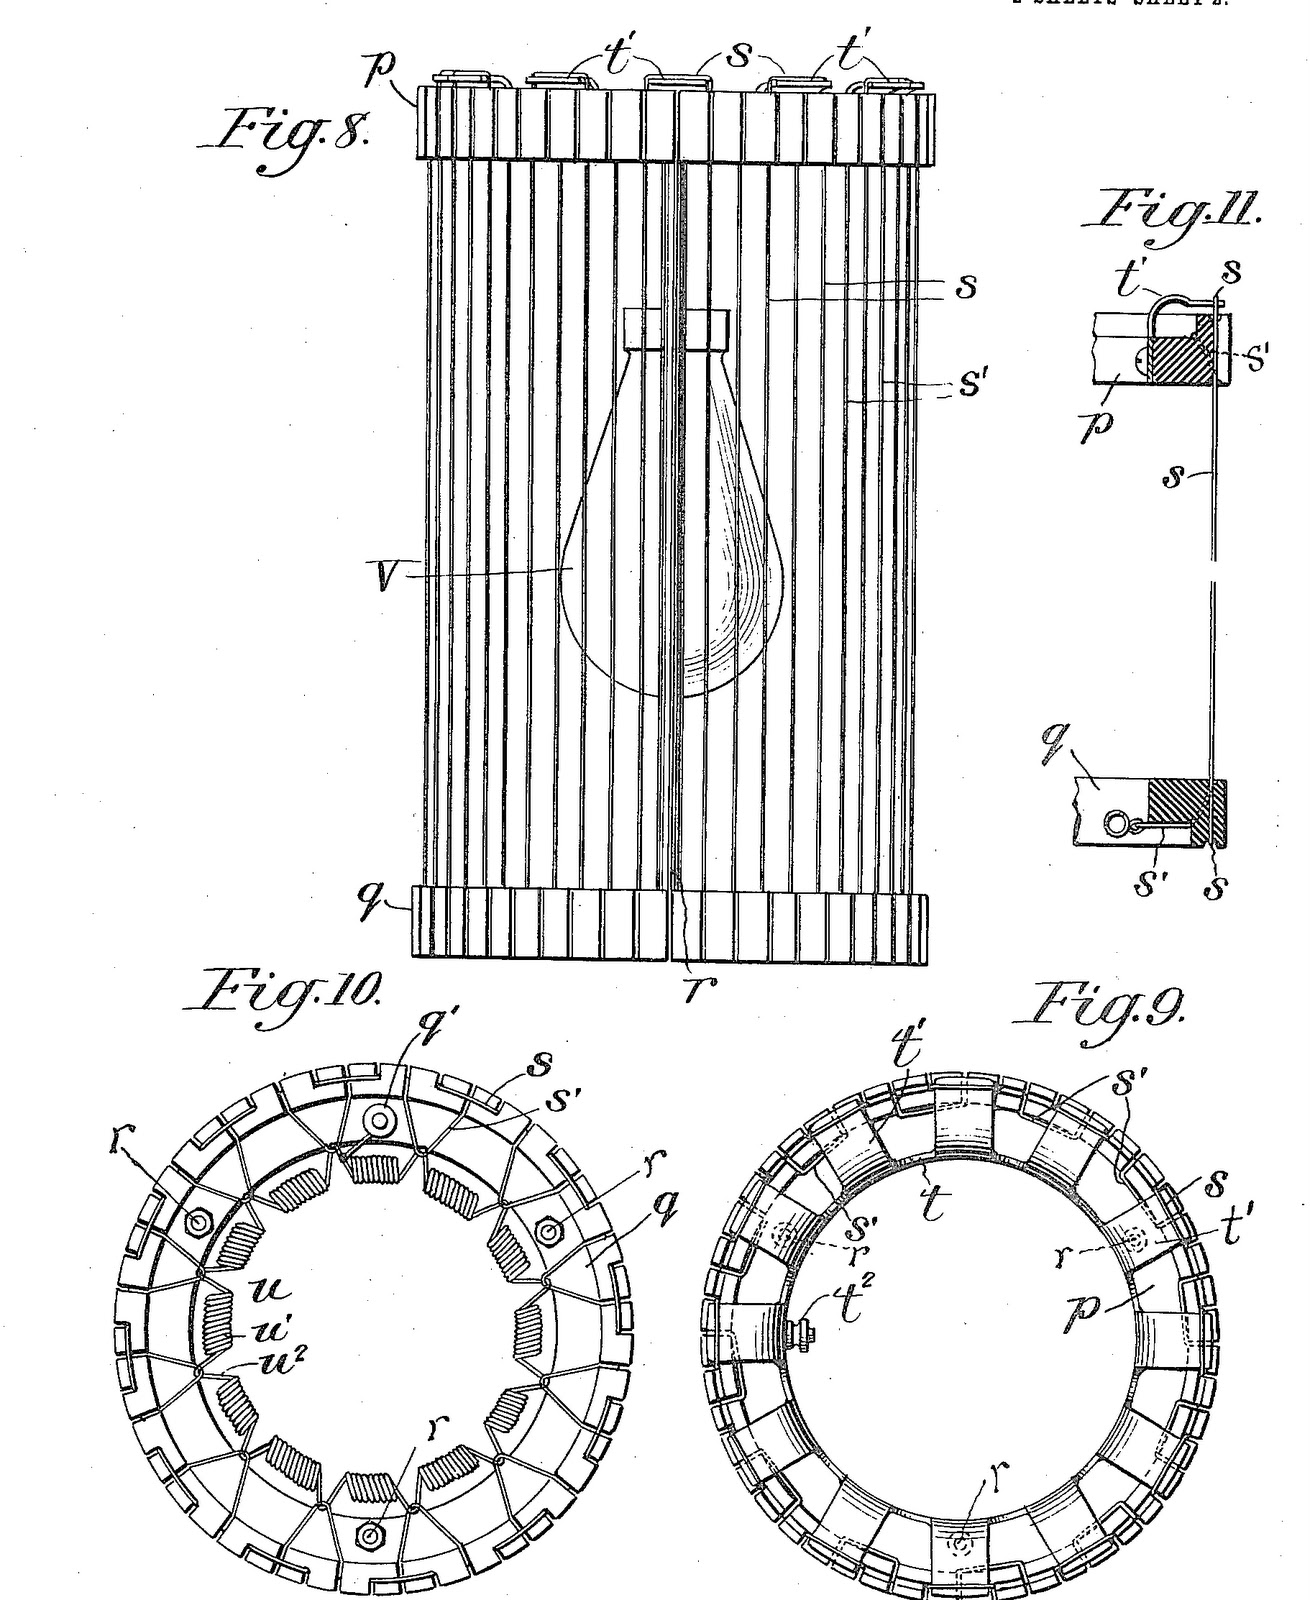 medium resolution of the charge on the wires was supplied using an induction coil and a battery the